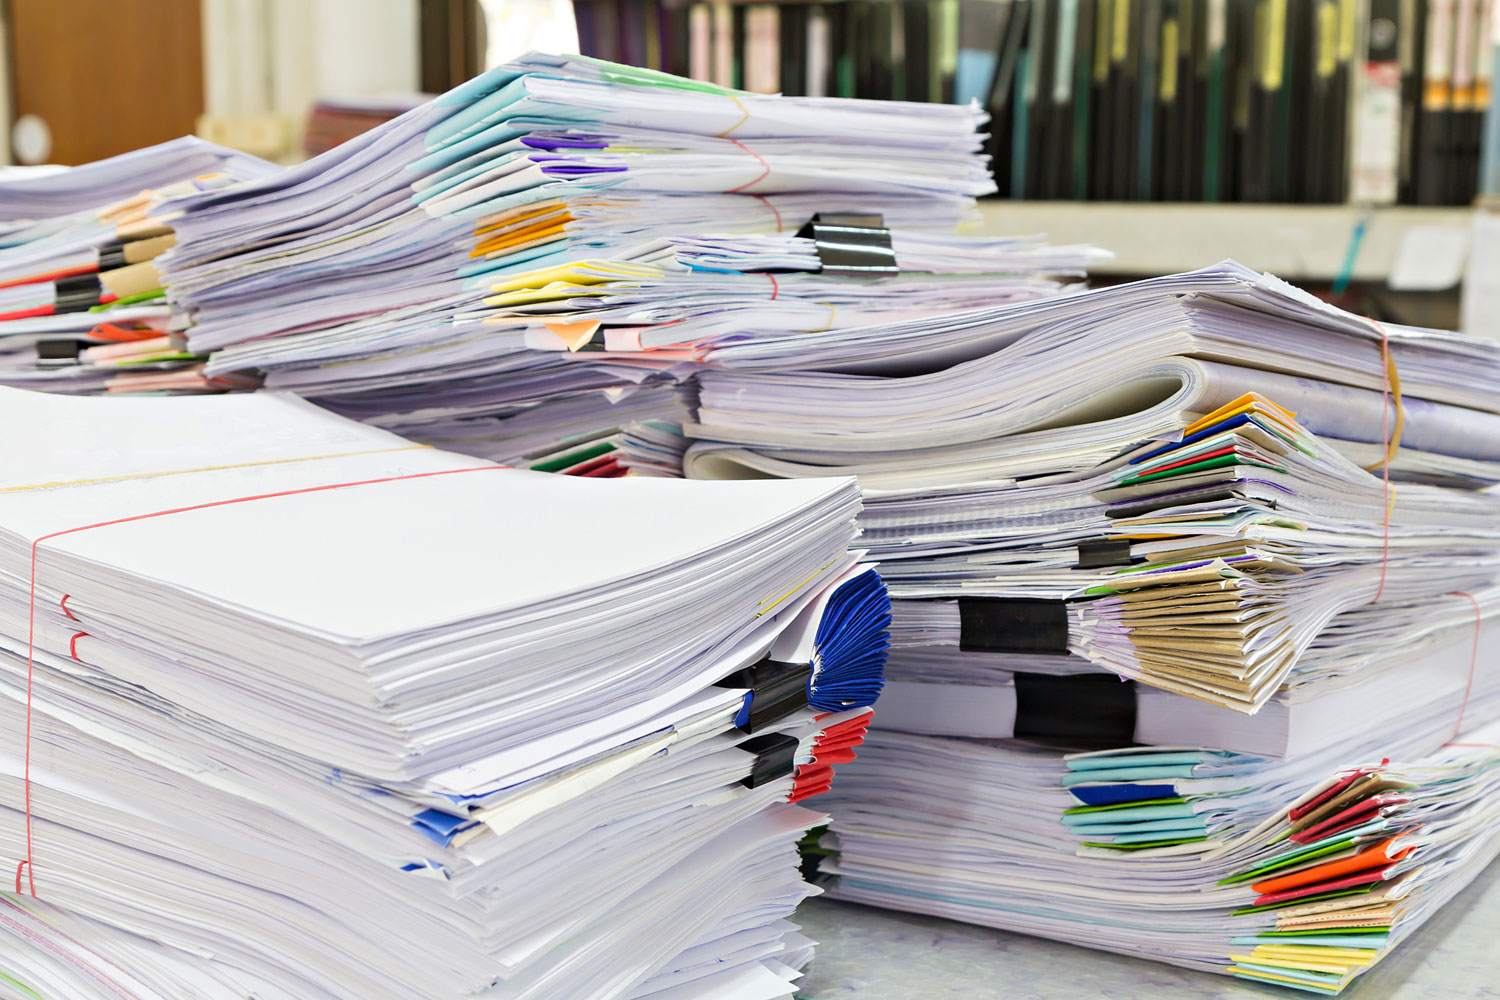 stacks of invoices and paper payments on a desk in AP